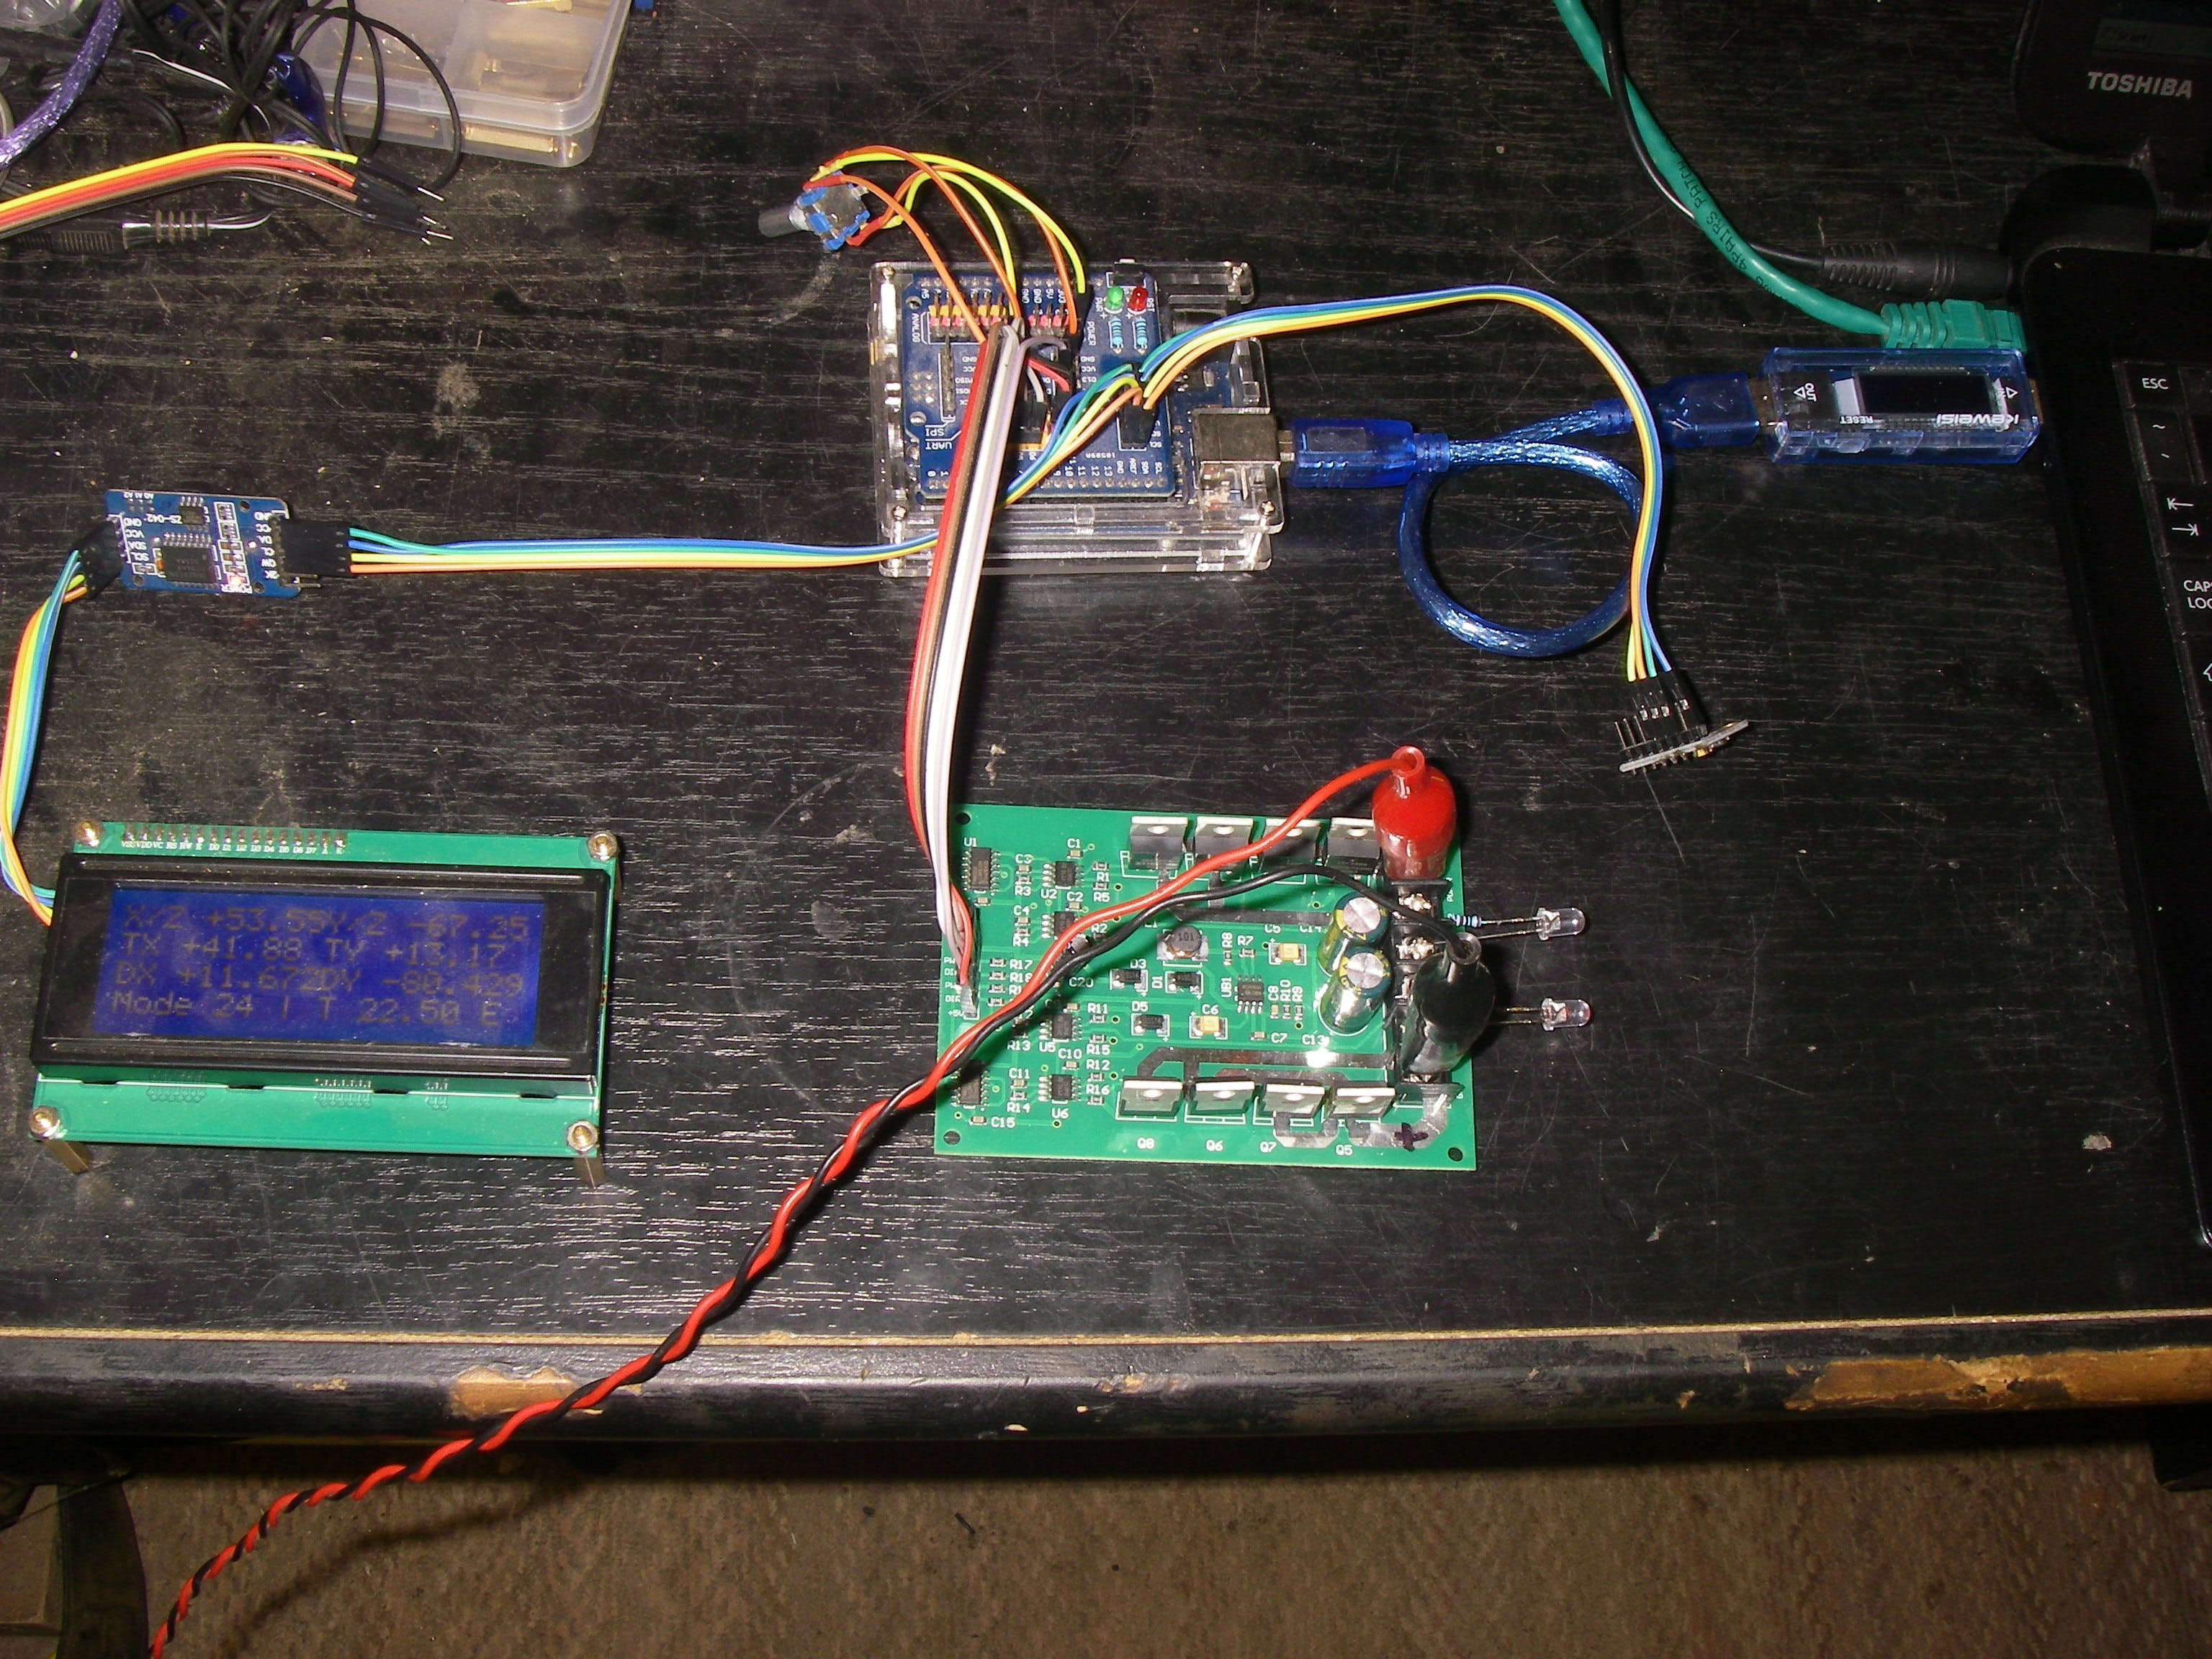 Another tracker built to test the new H switch drive board